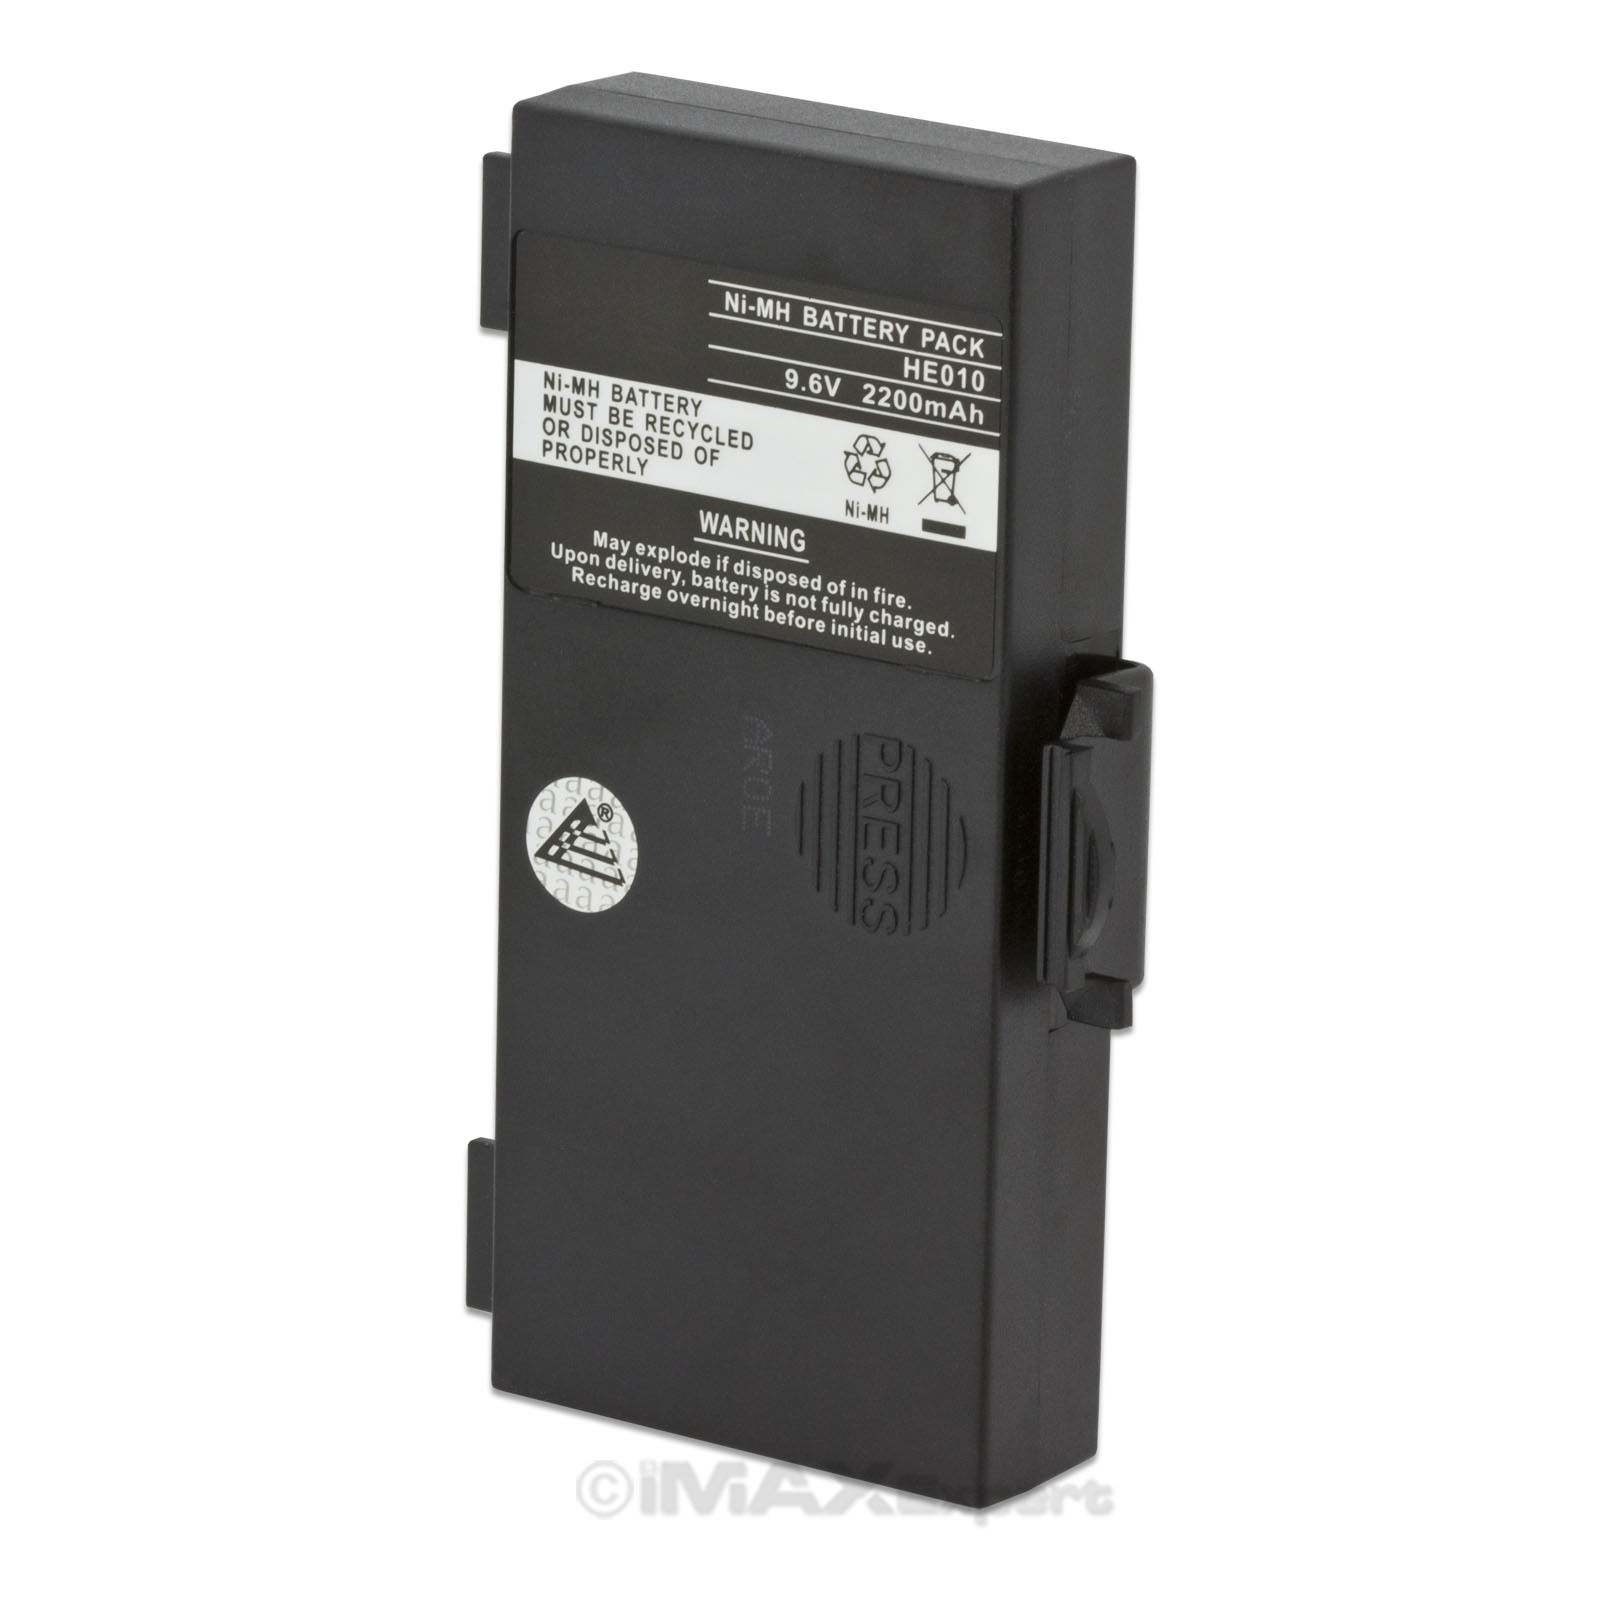 9 6v 2200mah Ni Mh Crane Battery For Hetronic Typ 68303010 70745 Ebay